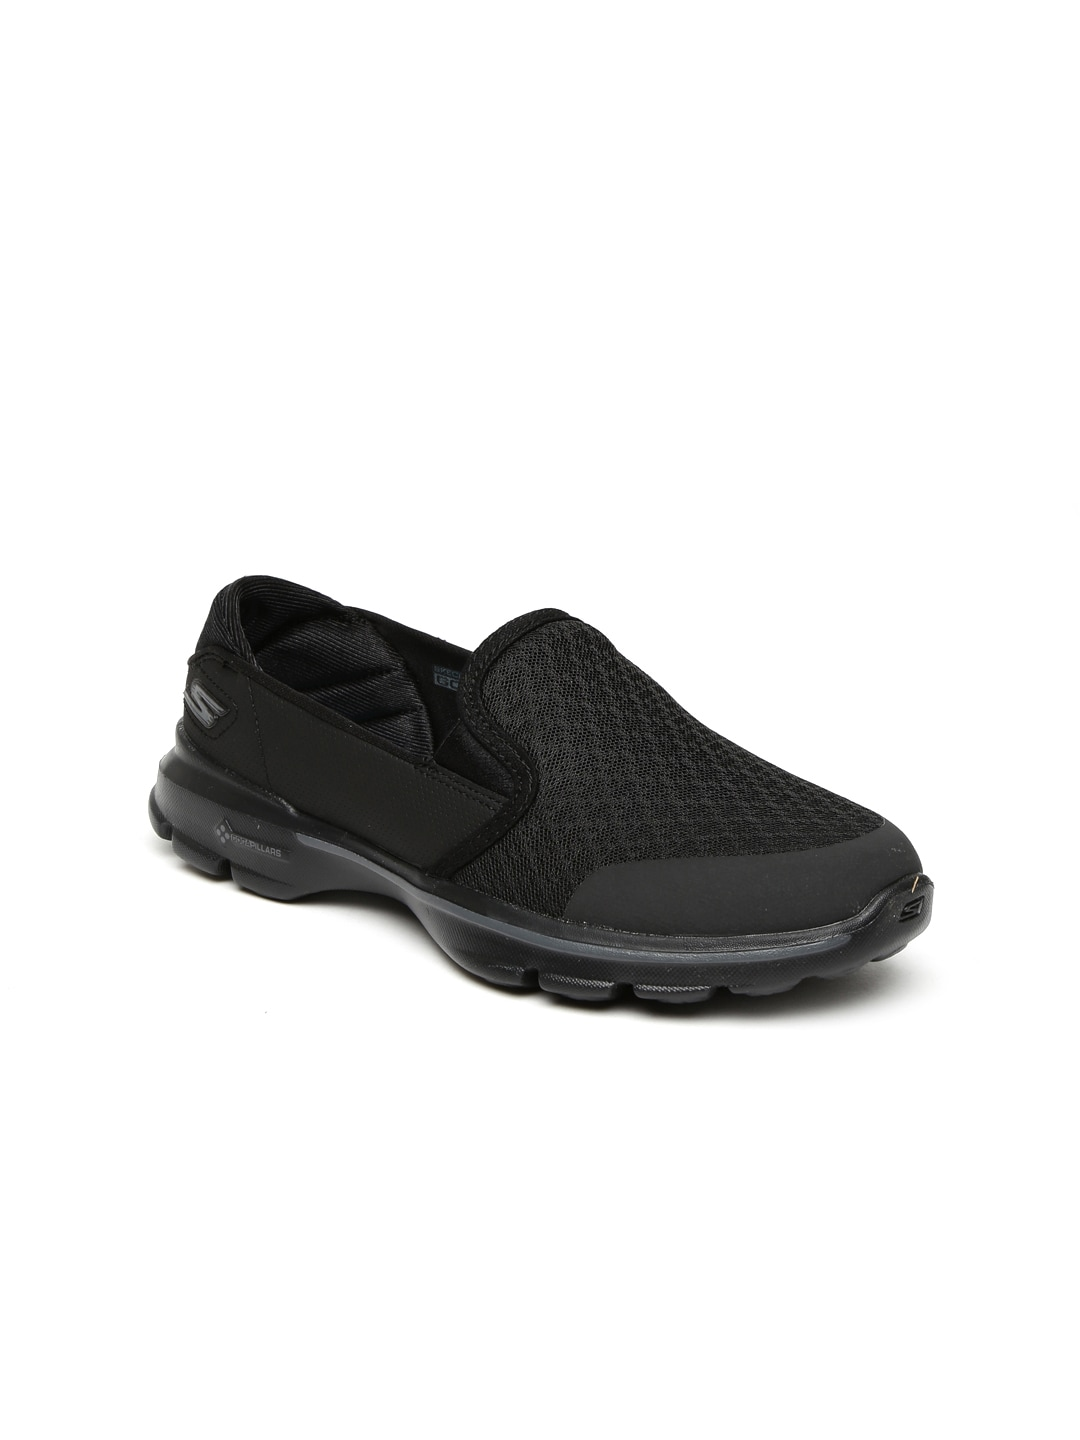 skechers black walking shoes. skechers black walking shoes